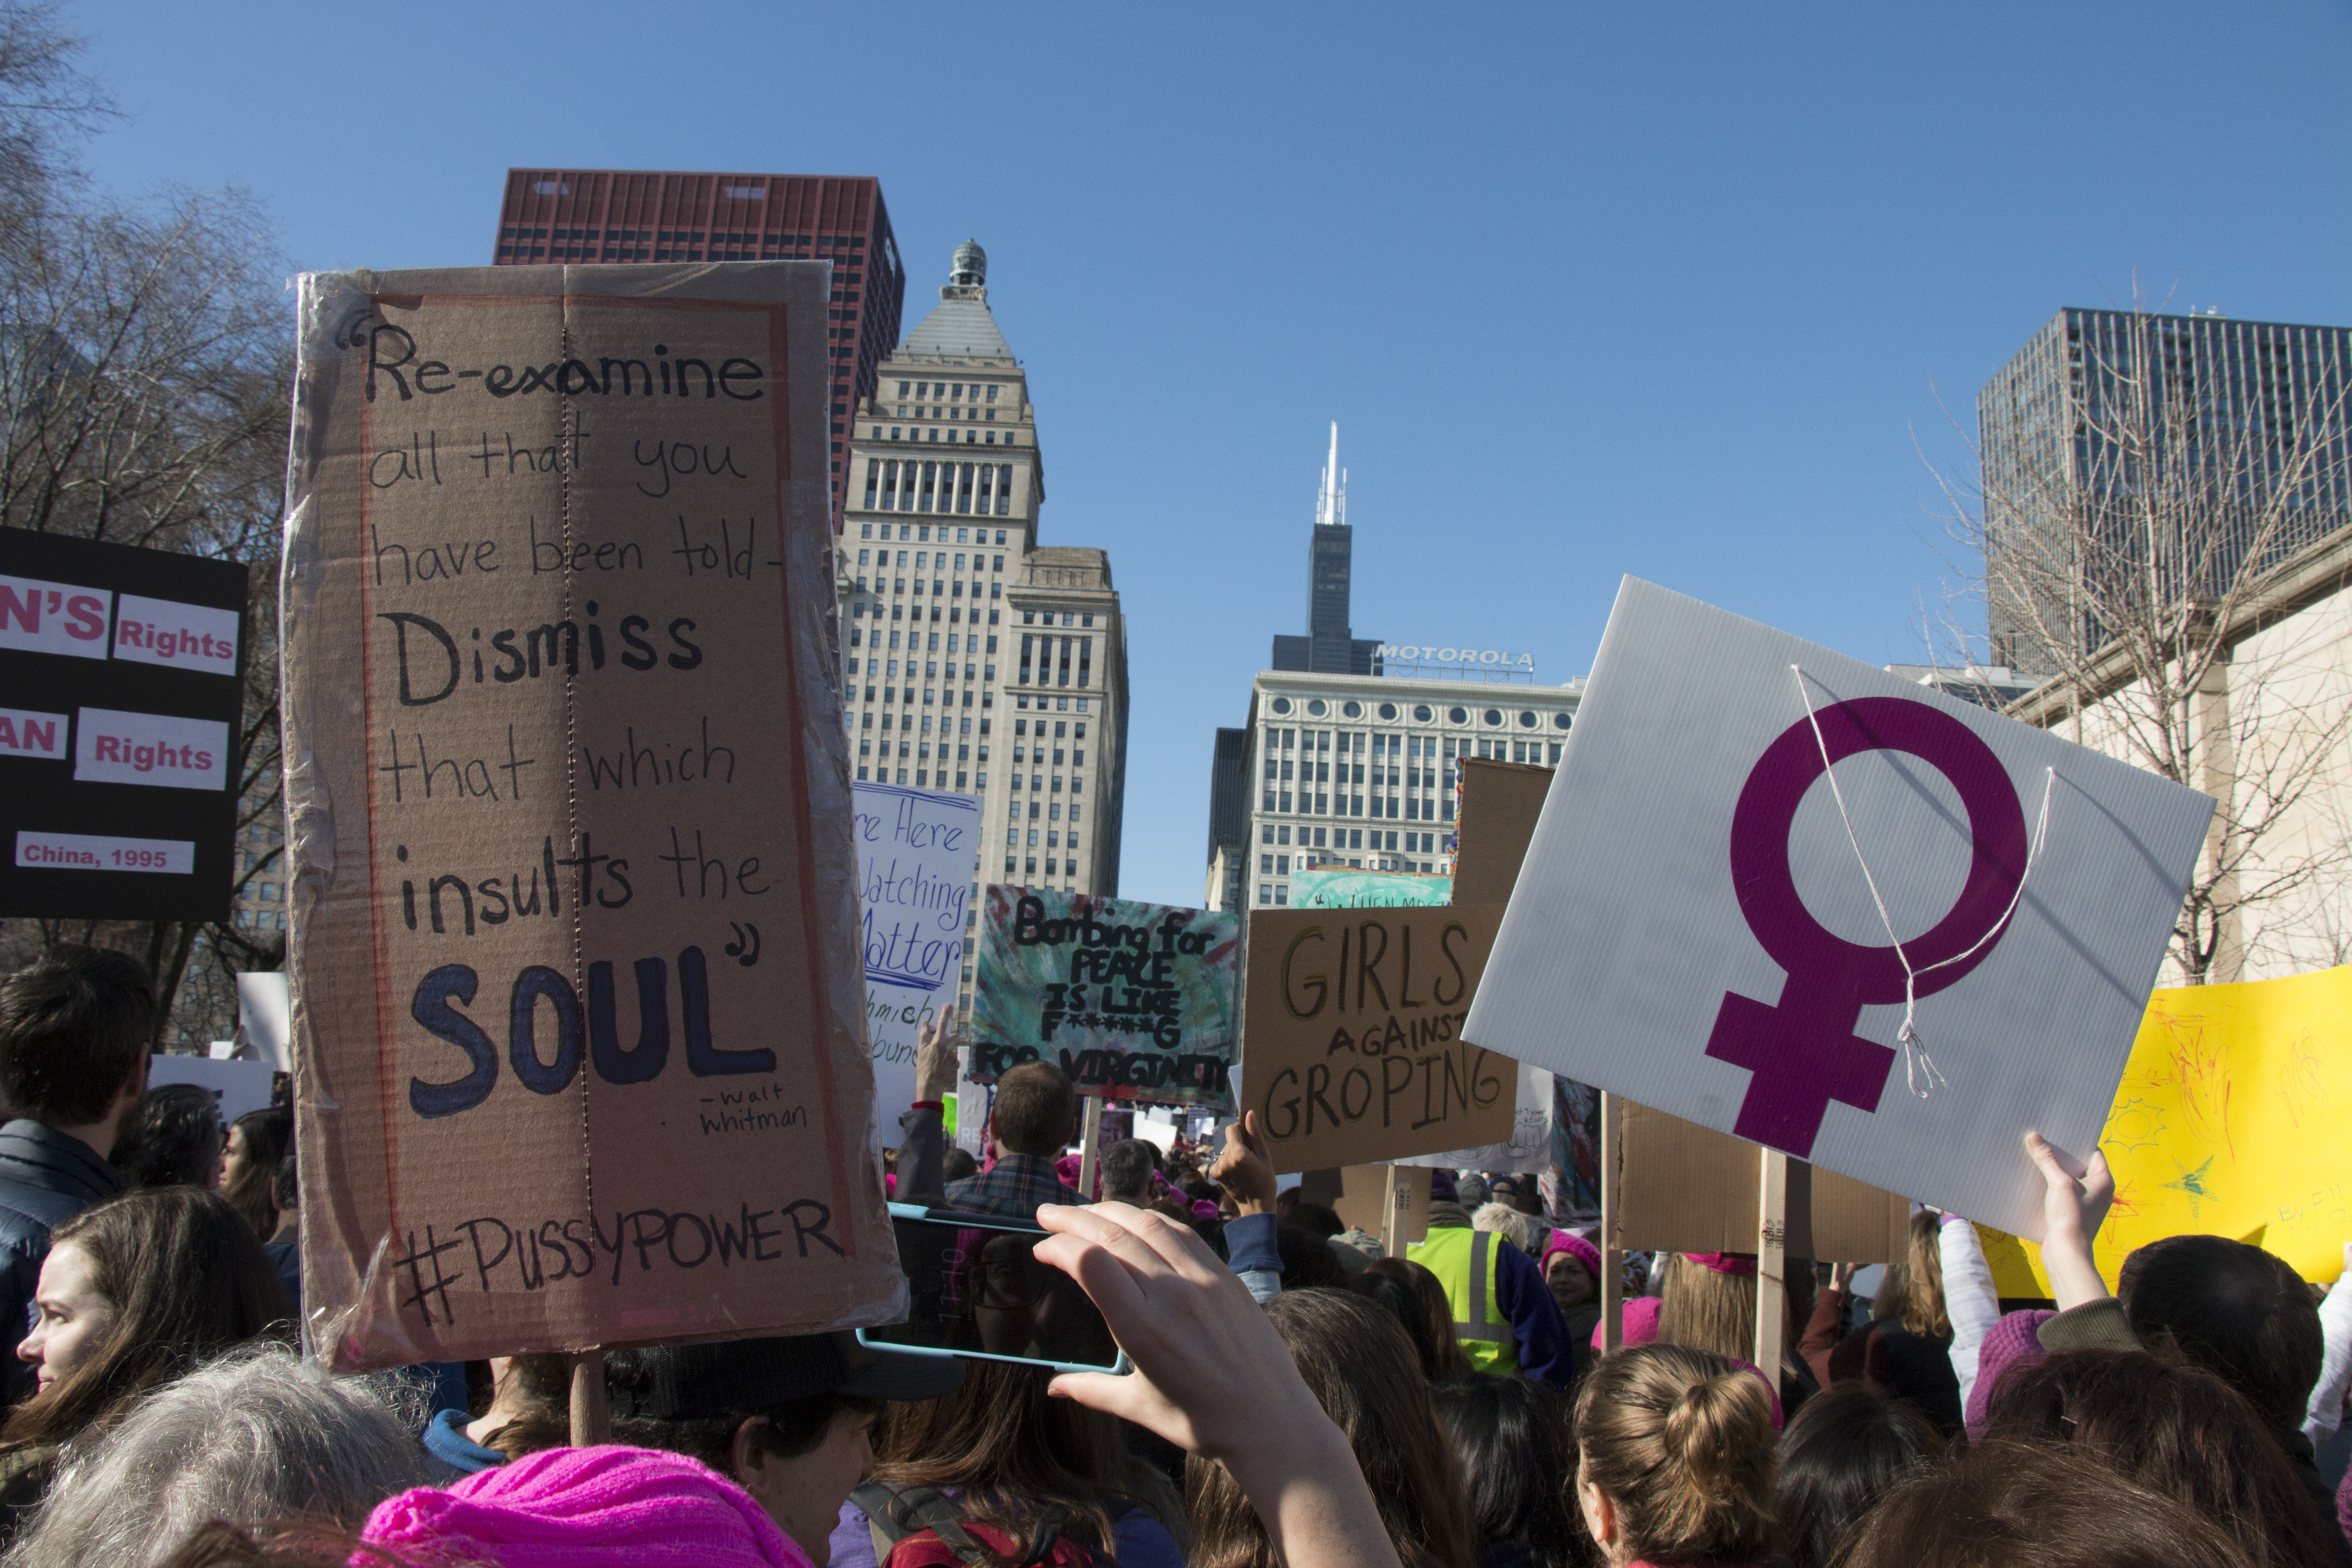 Chicago Women's March | January 21st, 2017